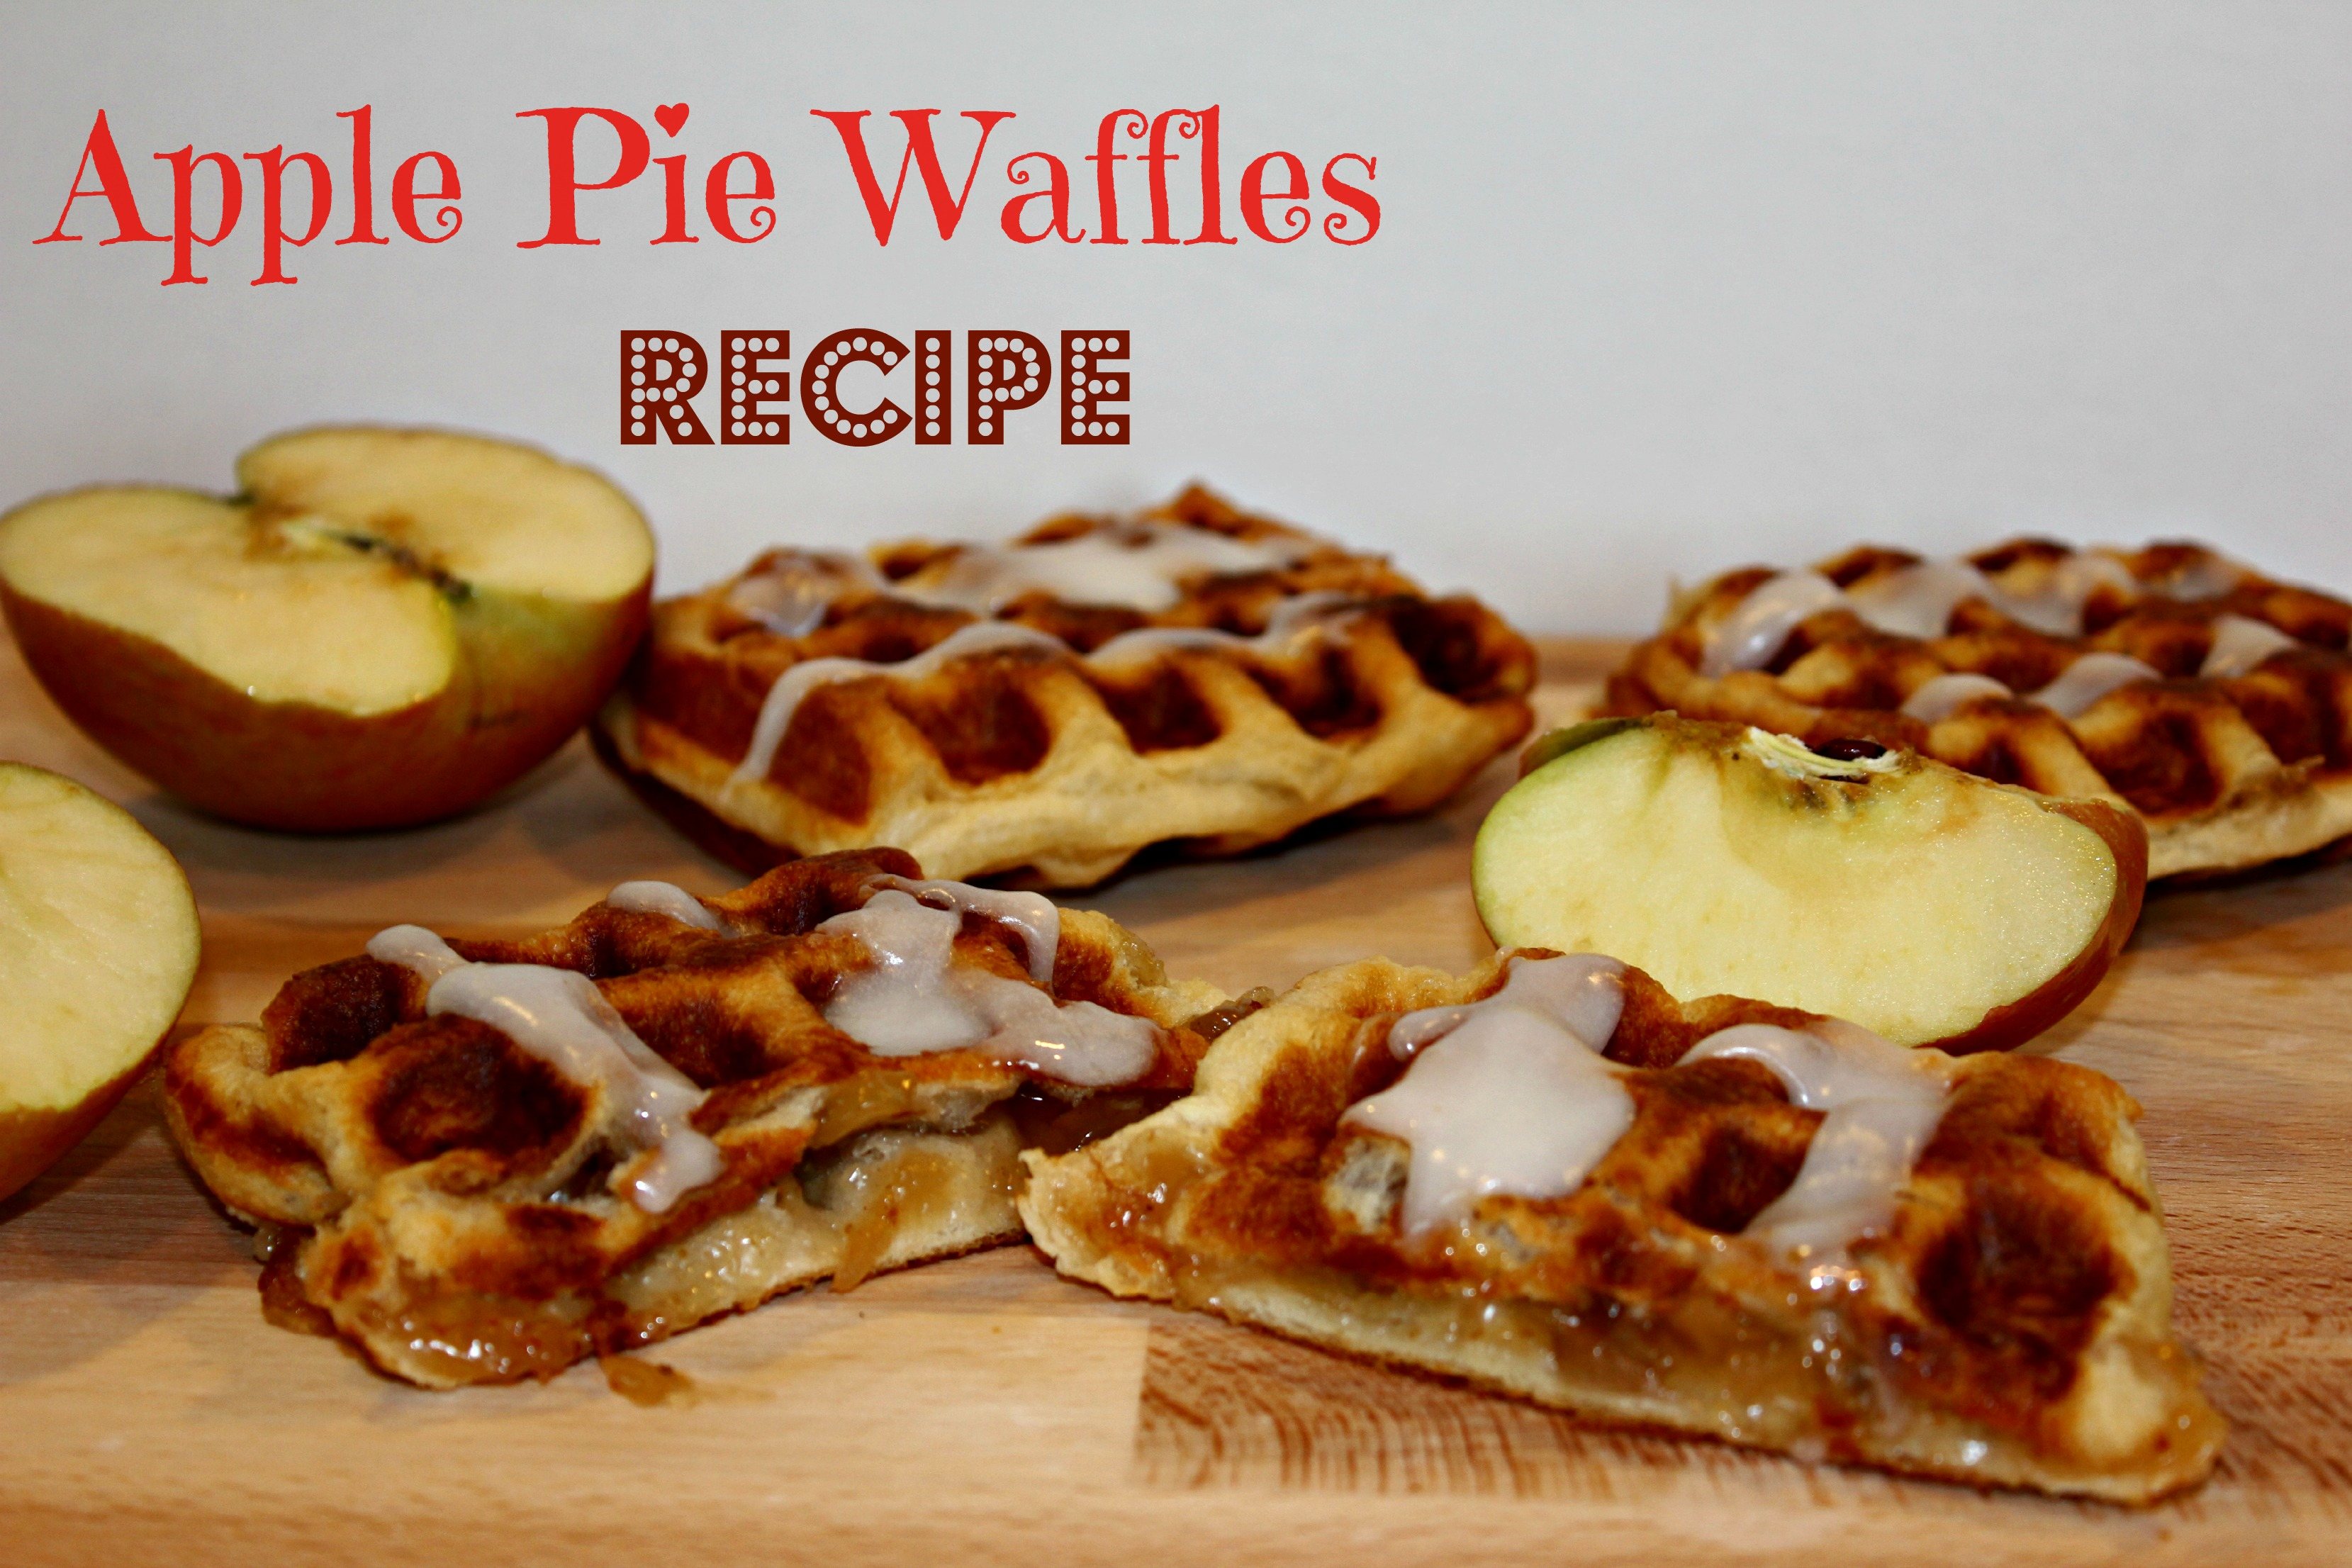 Apple Pie Waffles Recipe!